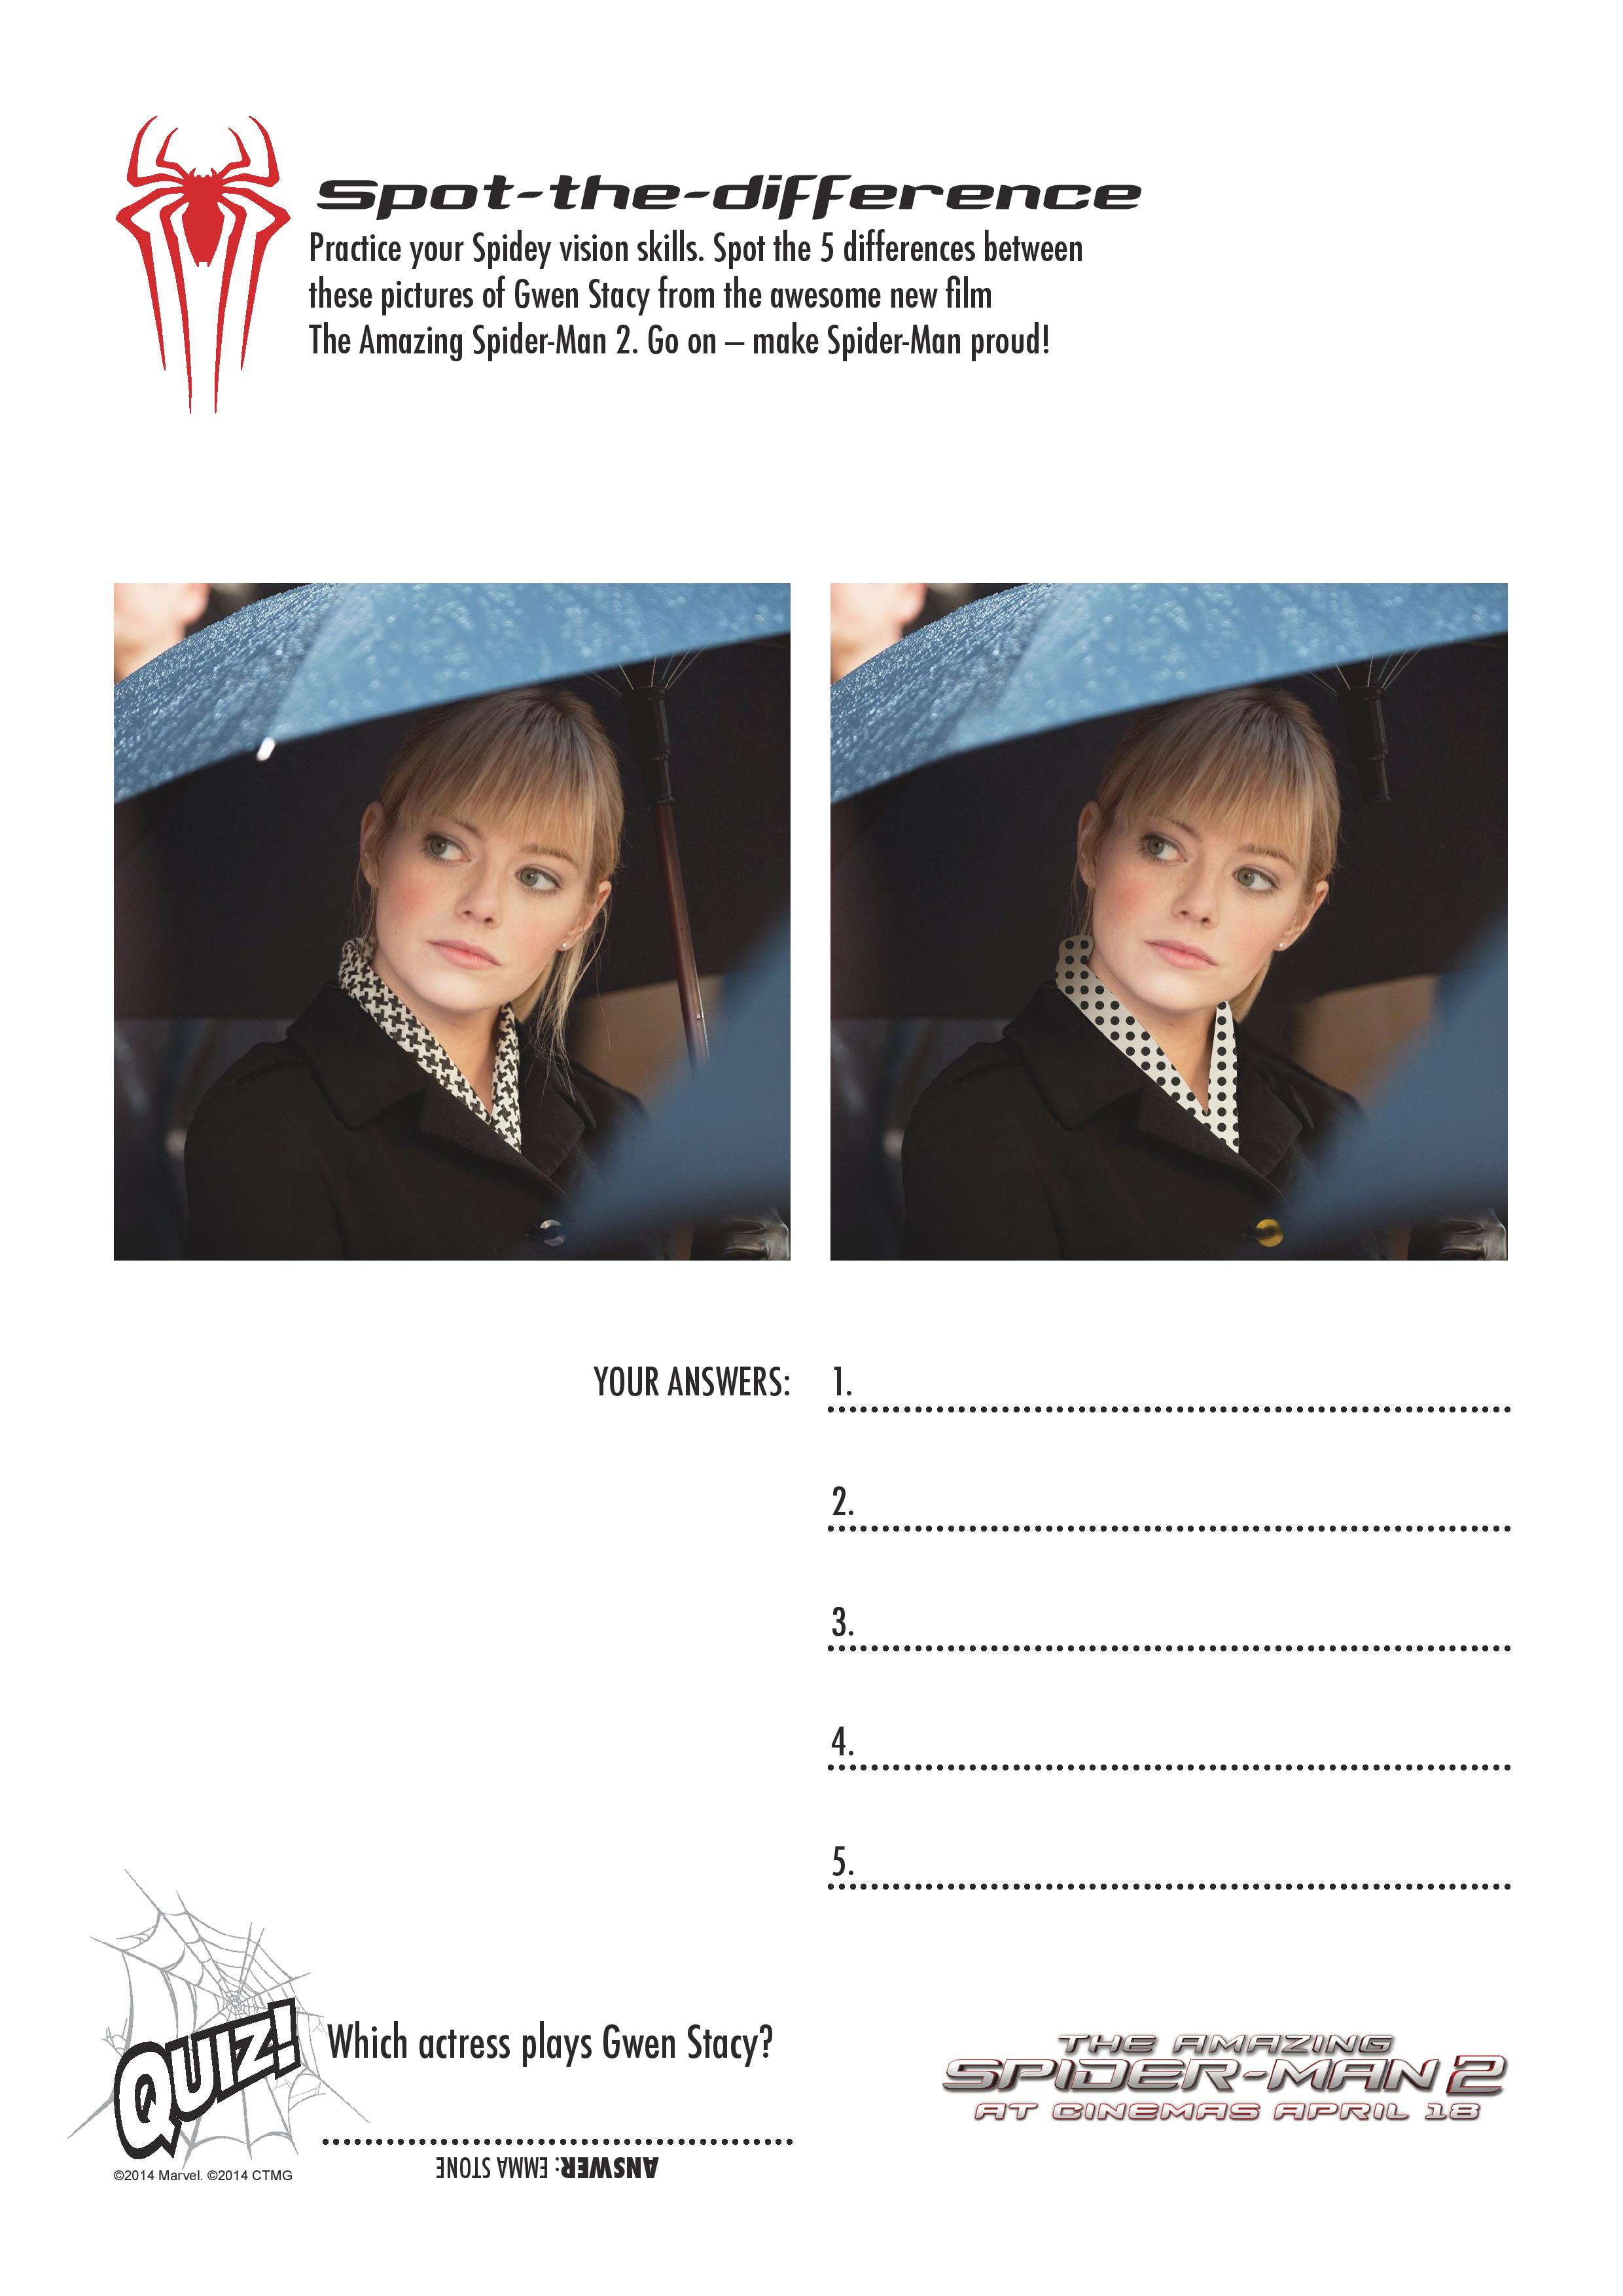 spiderman2_activity_pack_v4.1-page-006